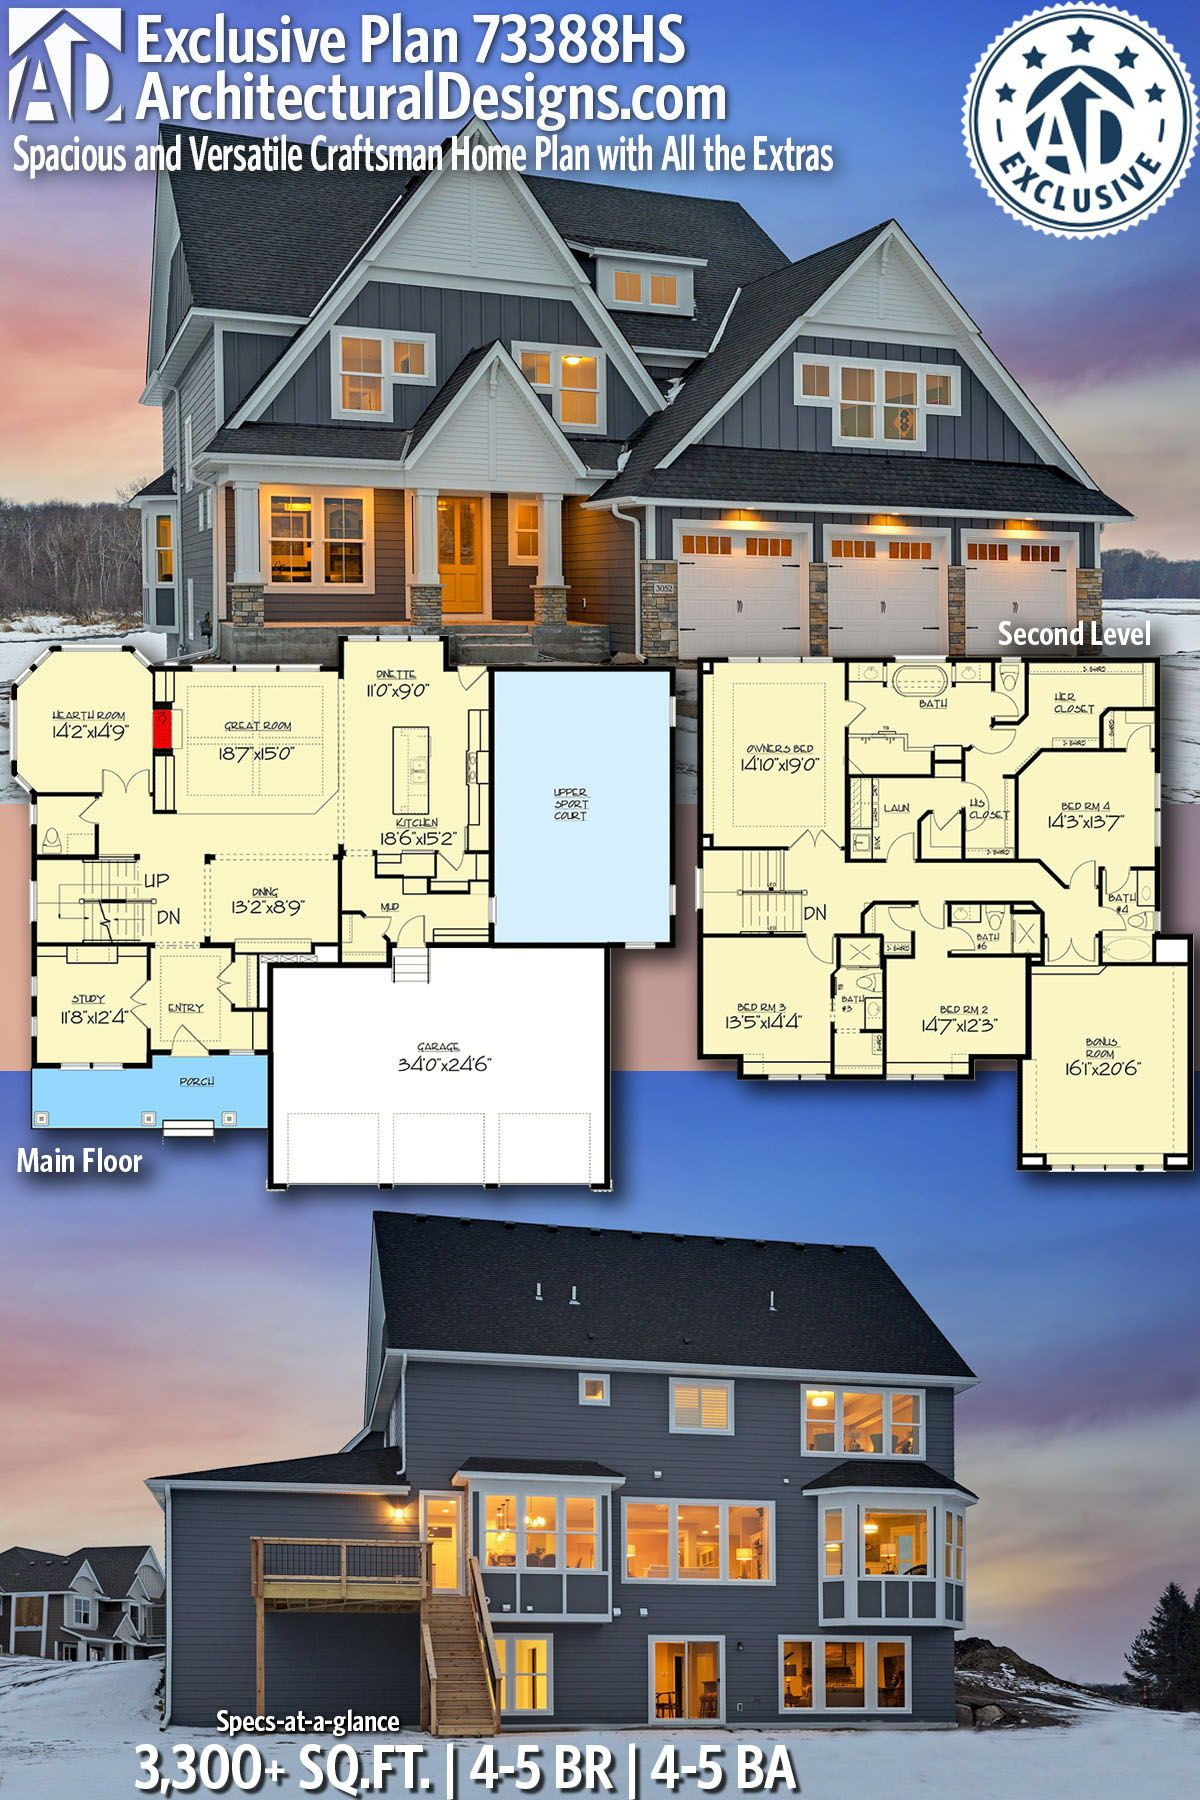 Architectural designs exclusive house plan hs gives you bedrooms also best homes for the sloping lot images in architecture rh pinterest